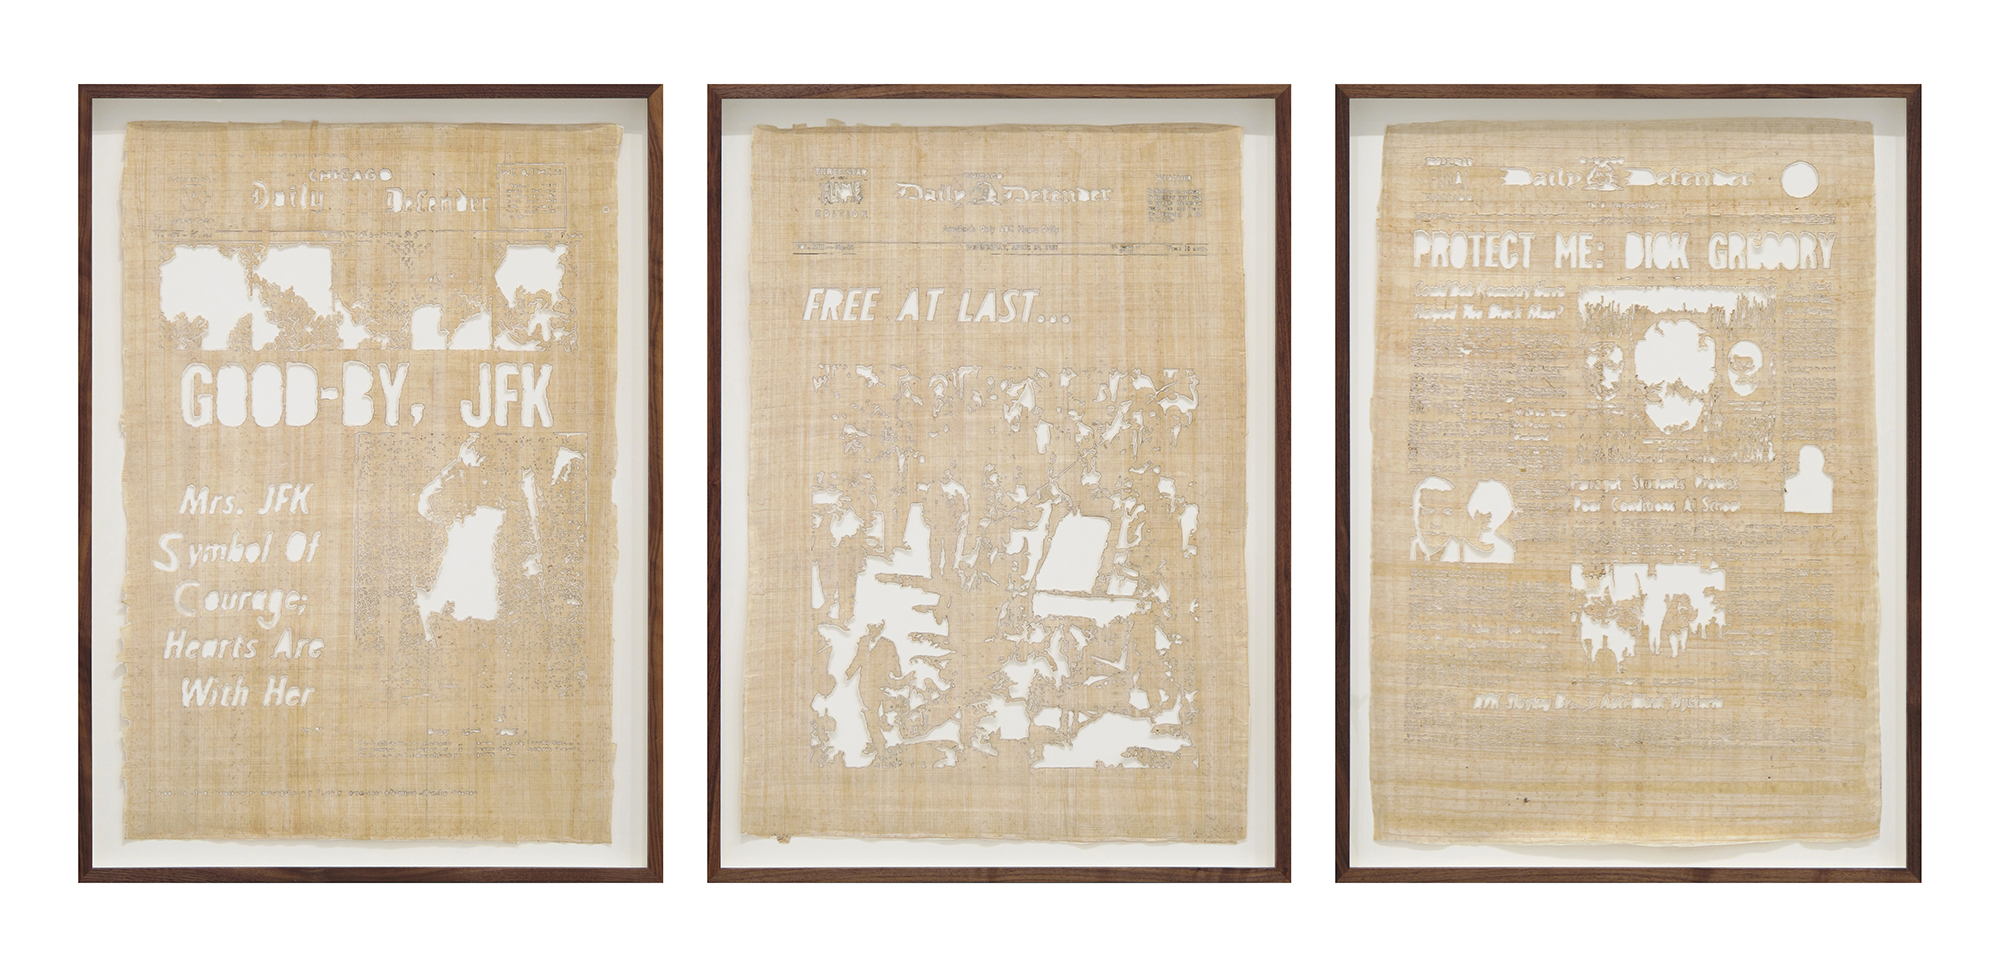 Jamal Cyrus, Kennedy King Kennedy, 2015, laser-cut Egyptian papyrus backed with handmade paper, ed 1 of 2 triptych, 27 x 16 3/4 inches each